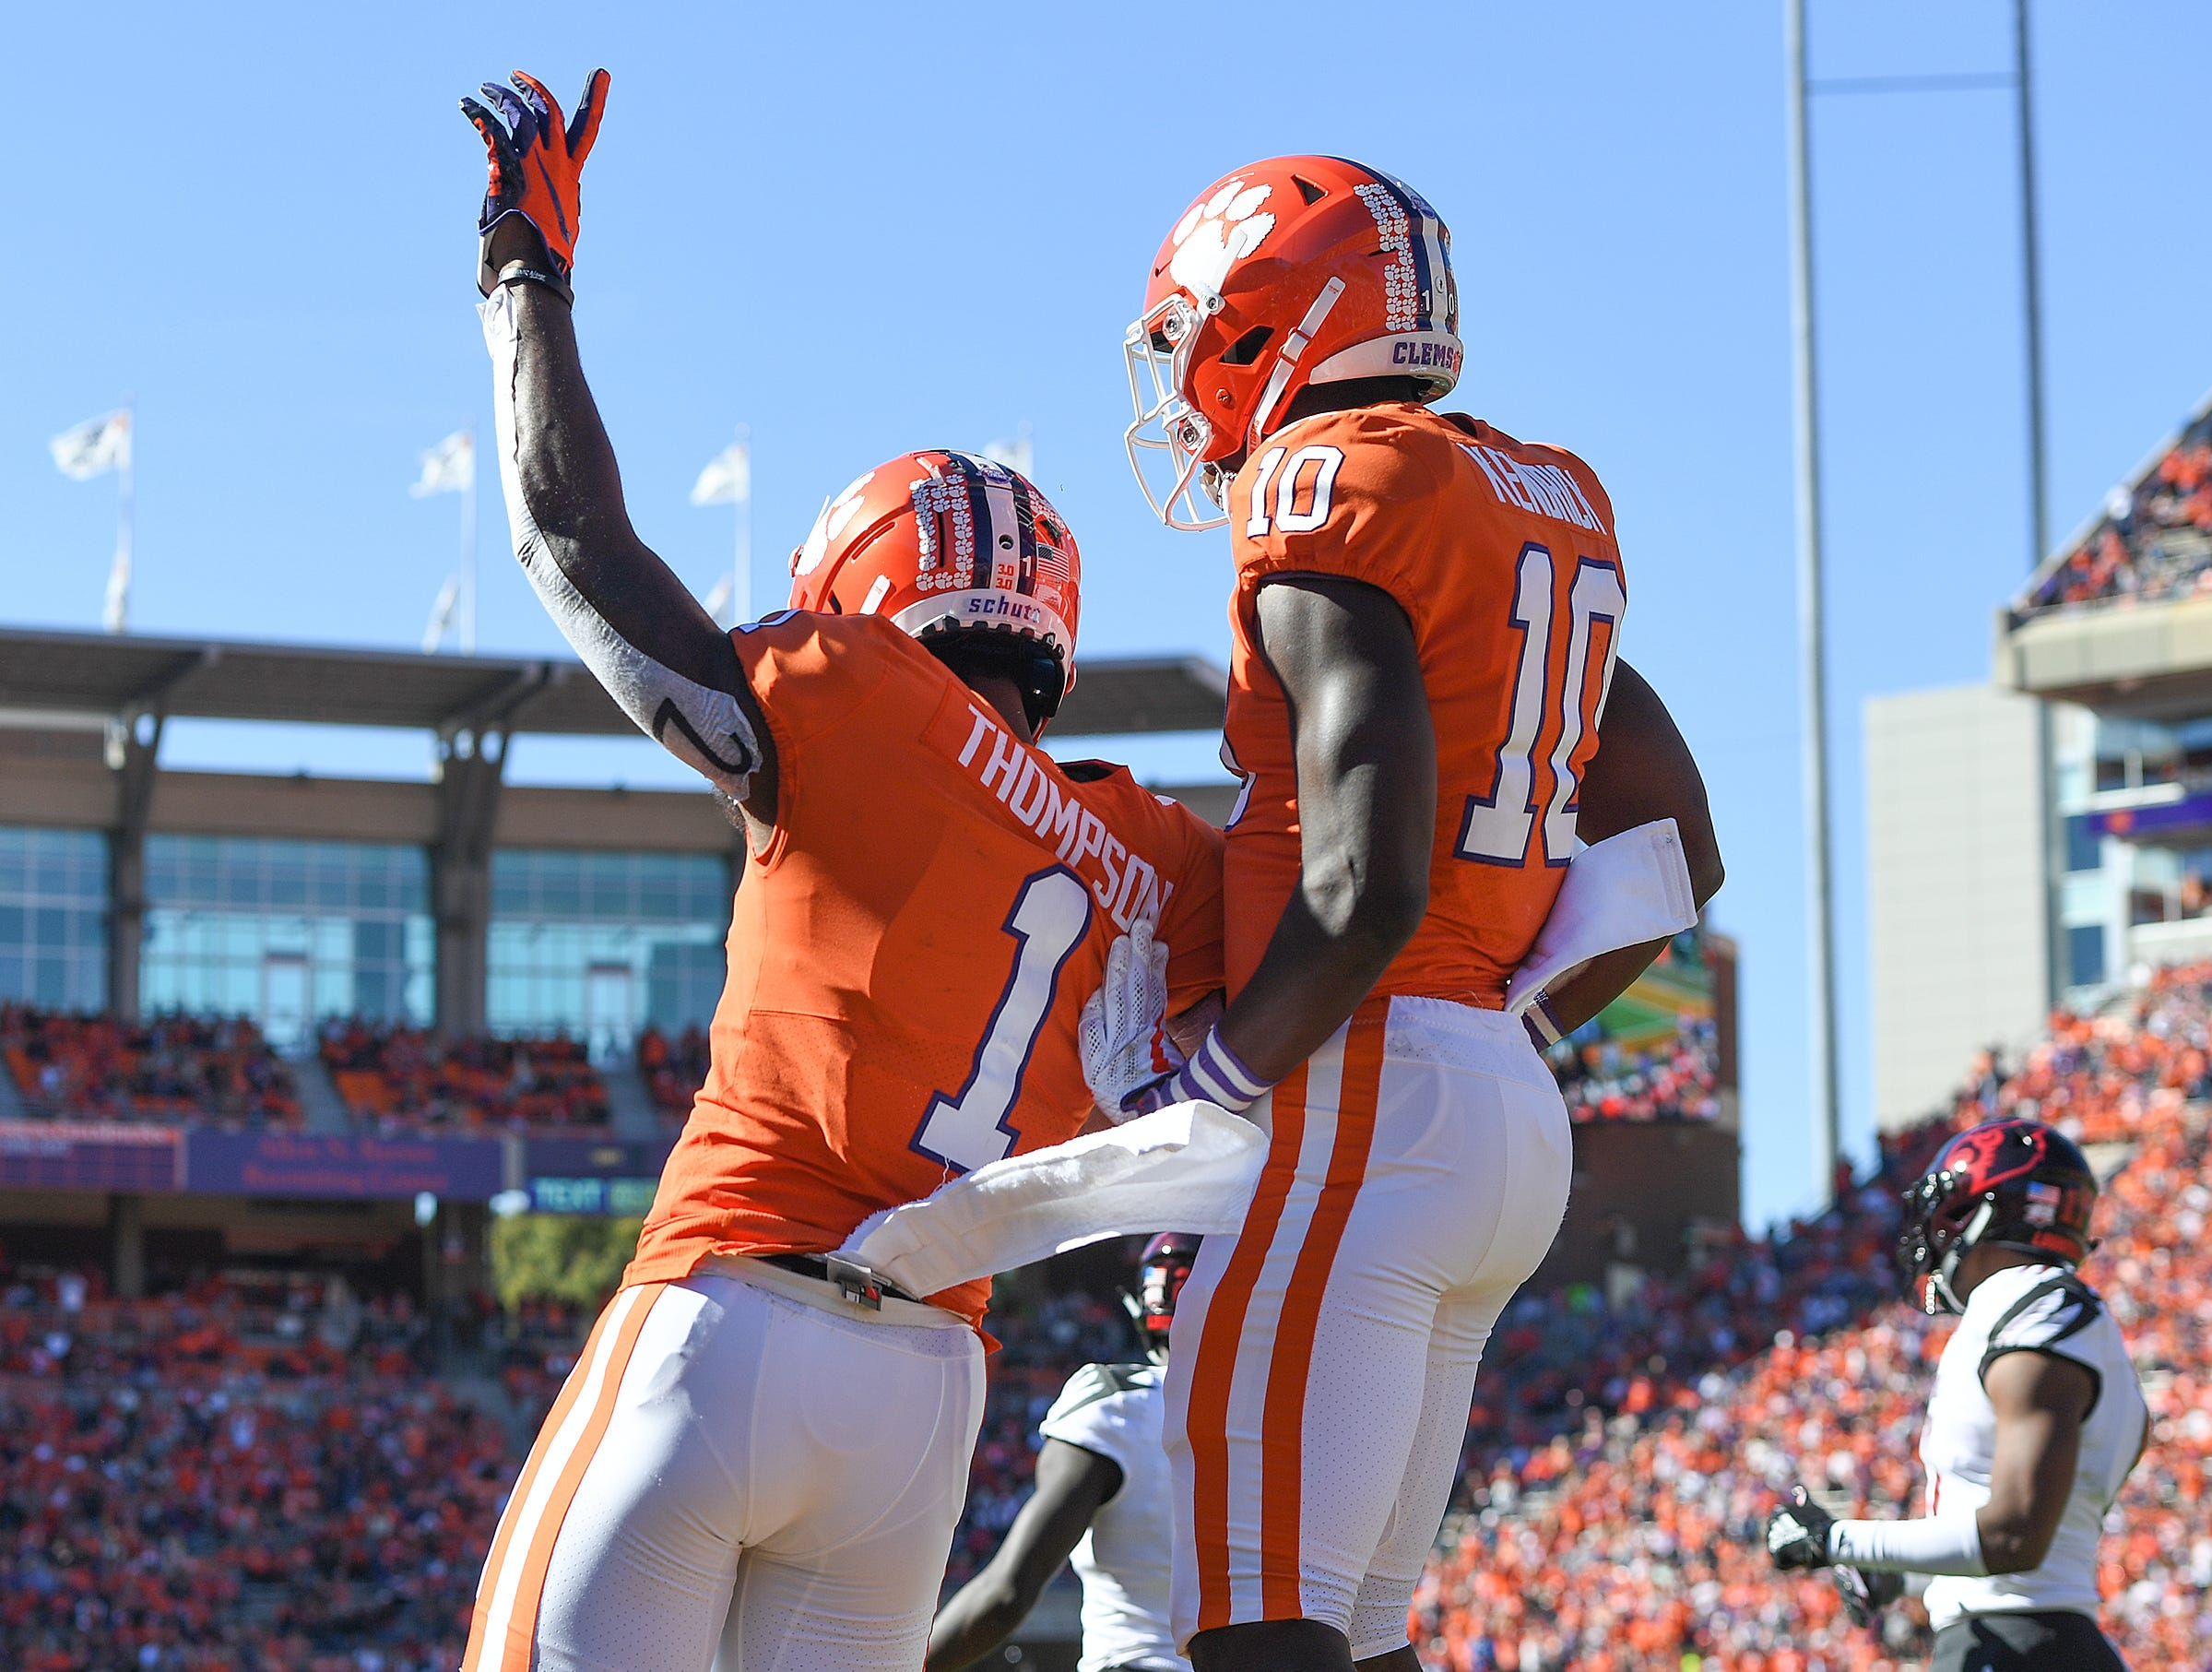 Clemson wide receiver Trevion Thompson (1) celebrates  Derion Kendrick (10) after catching a TD against Louisville during the 3rd quarter Saturday, November 3, 2018 at Clemson's Memorial Stadium.